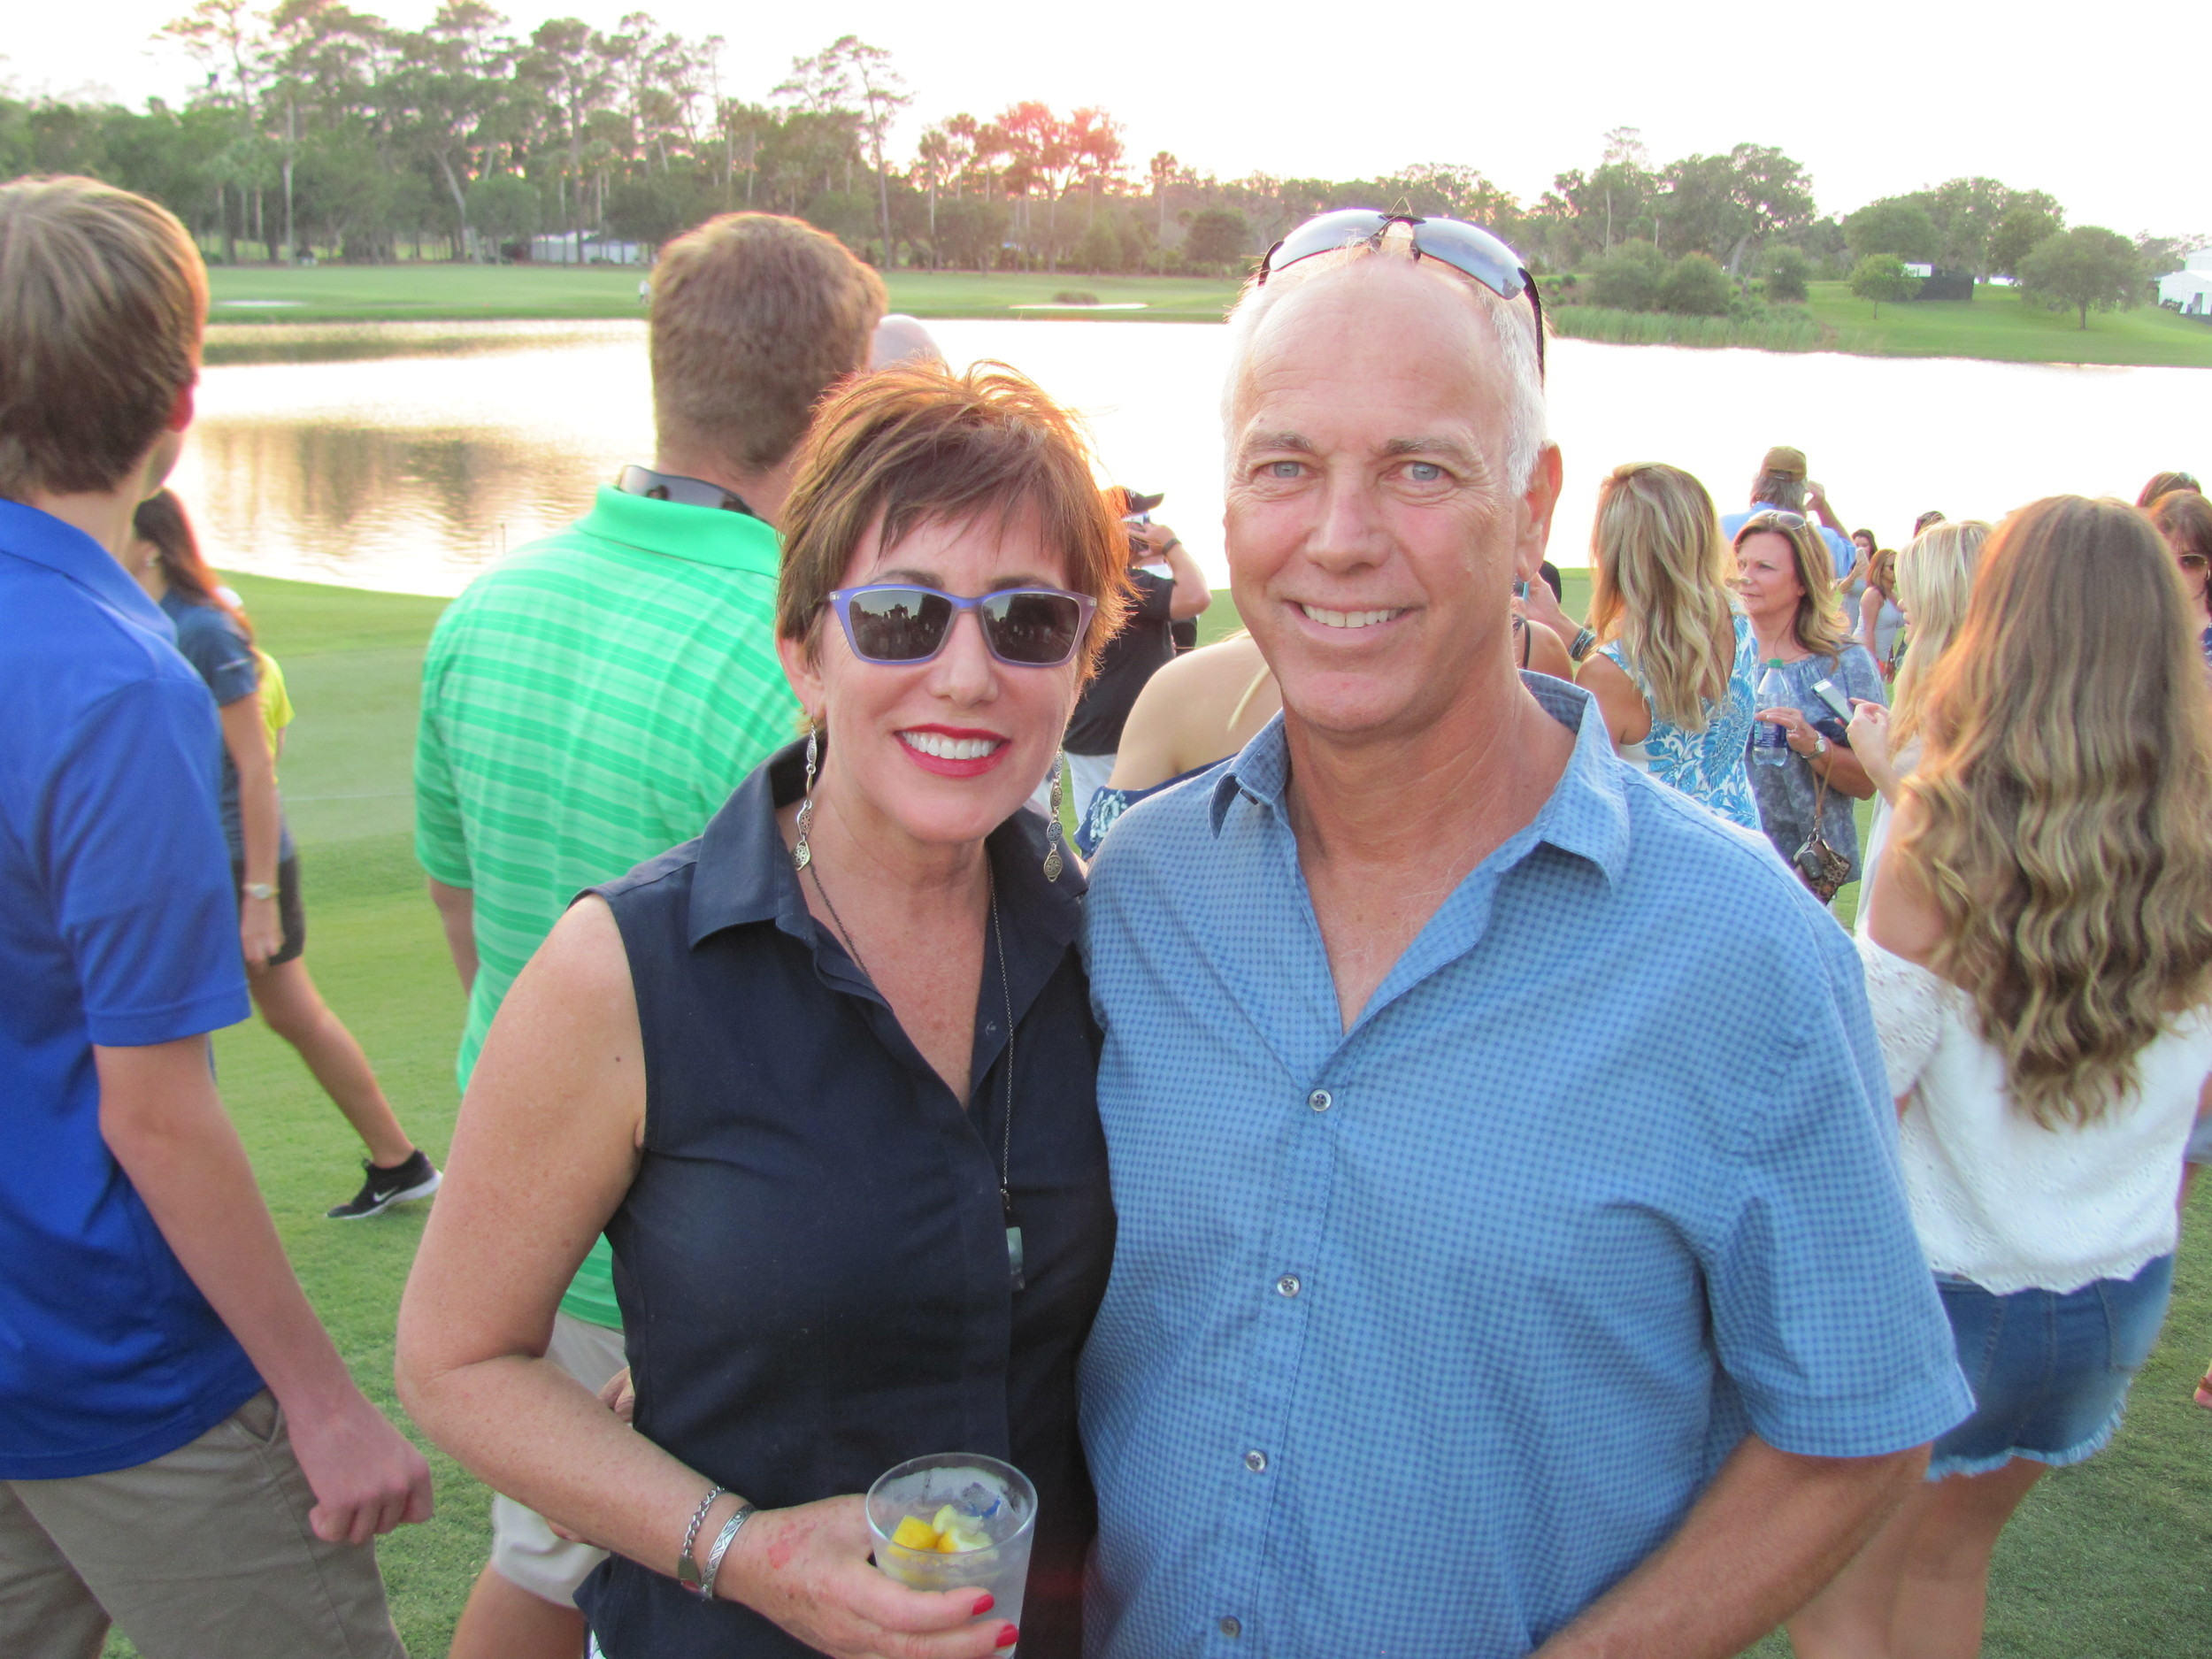 Eileen and John Alexon enjoy walking TPC Sawgrass after the military appreciation ceremony and Sam Hunt concert.